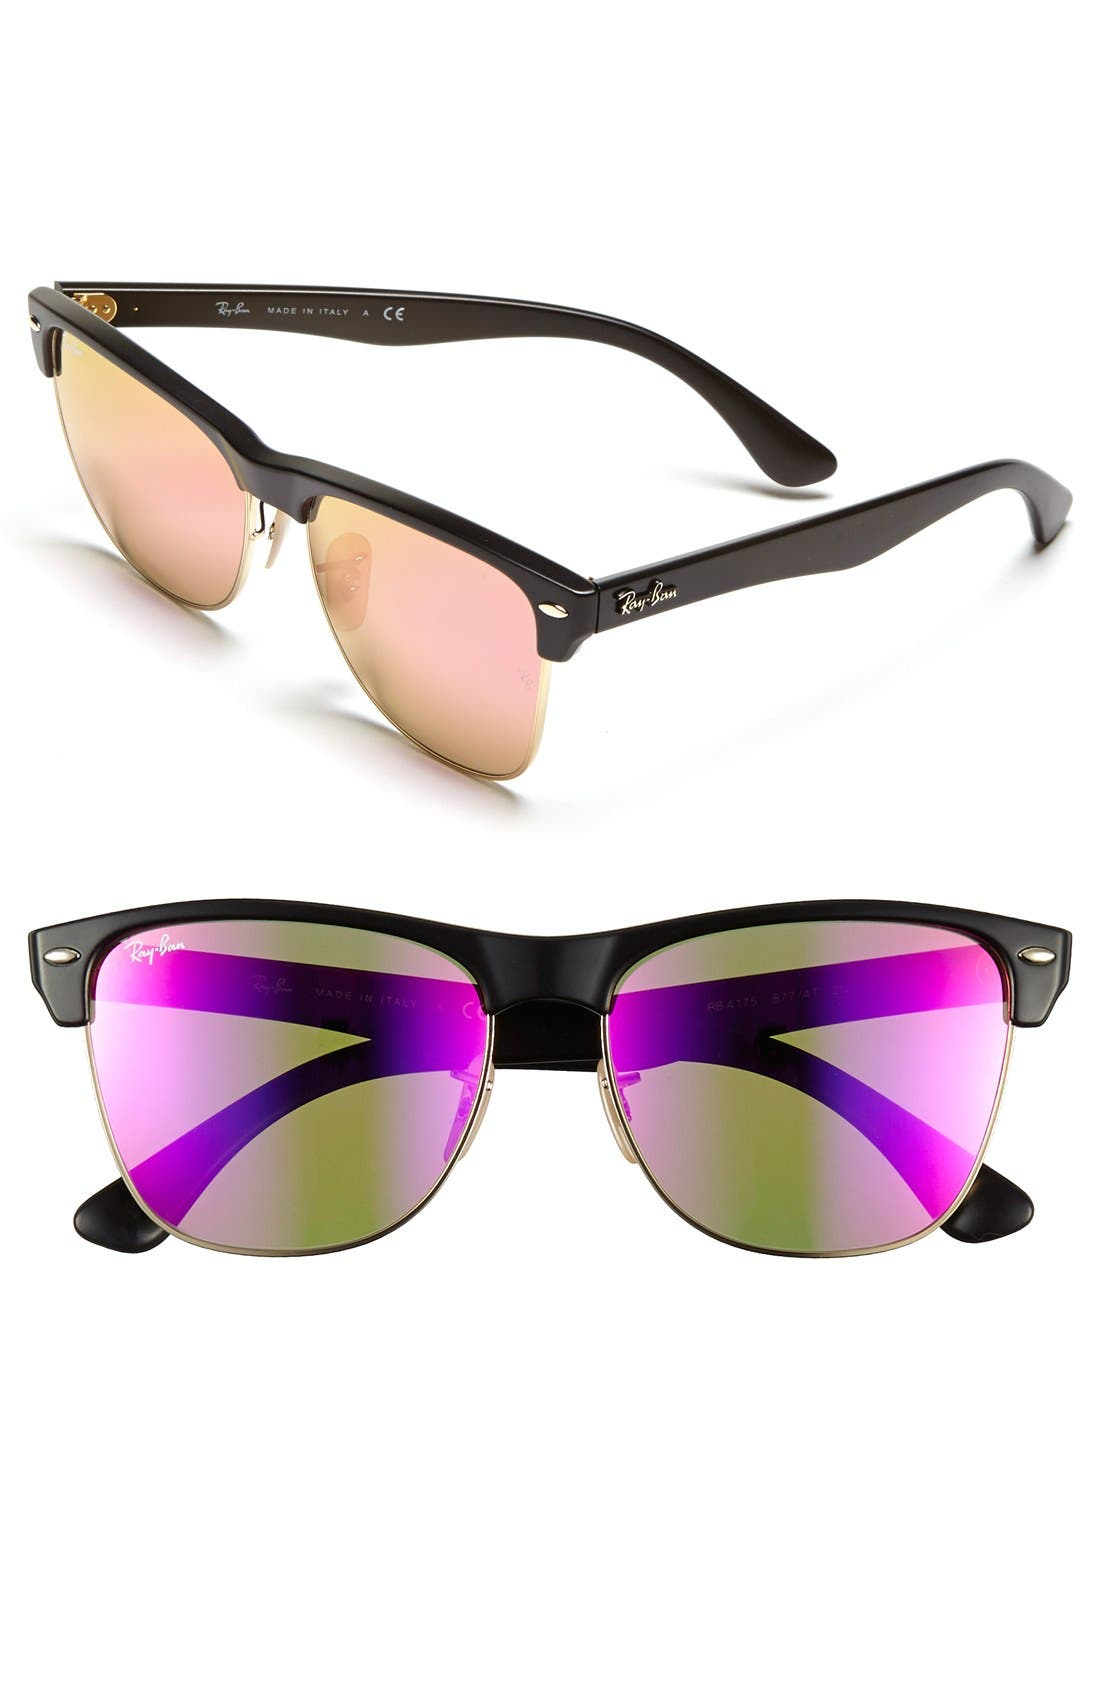 Alternate Image 1 Selected - Ray-Ban Highstreet 57mm Sunglasses (Nordstrom Exclusive)